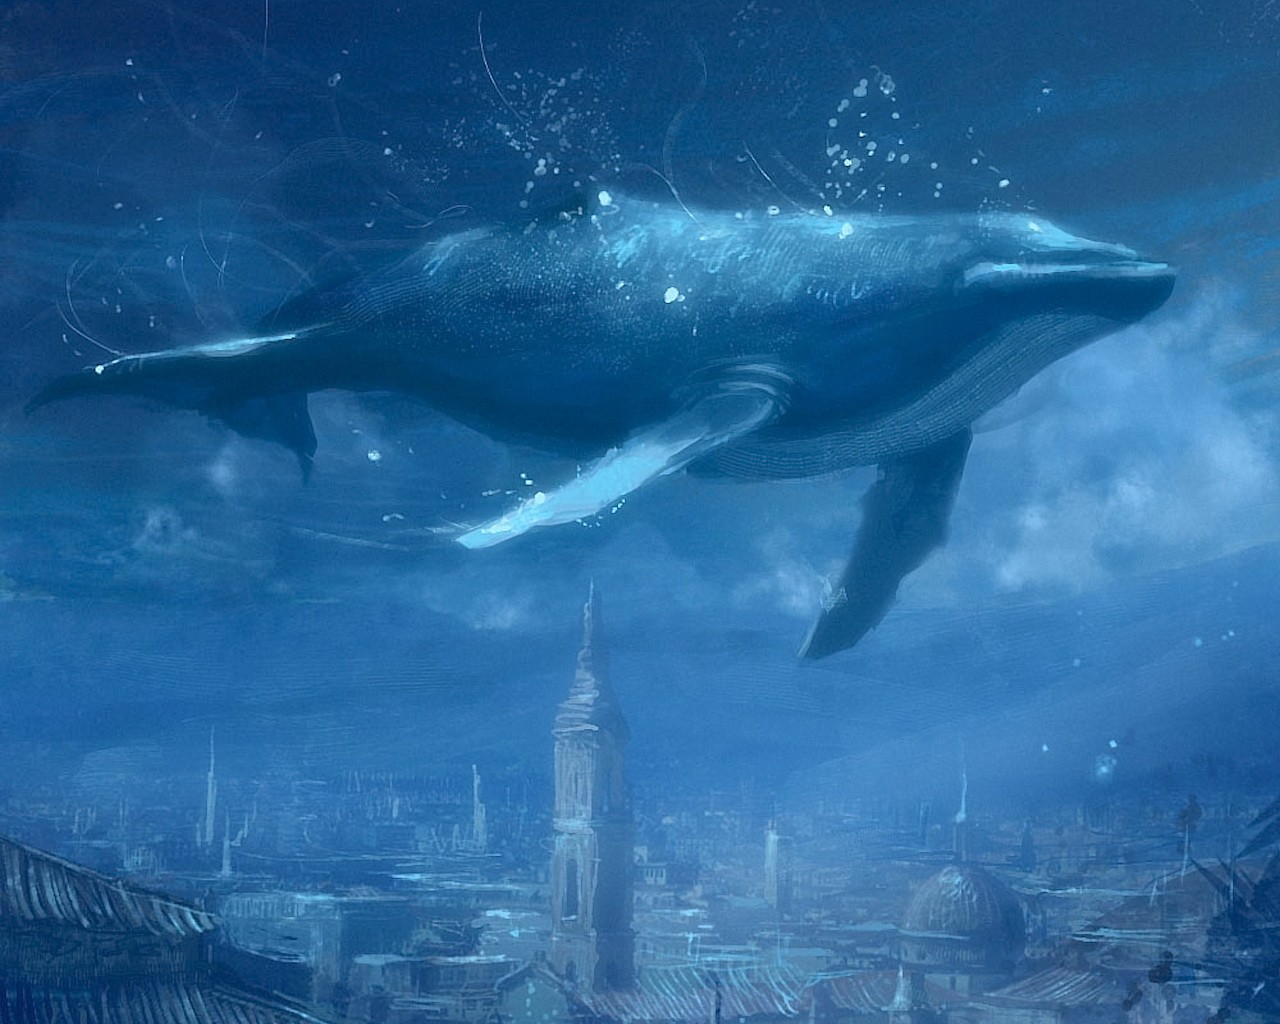 Drawn wallpaper whale The City The Wallpaper 156